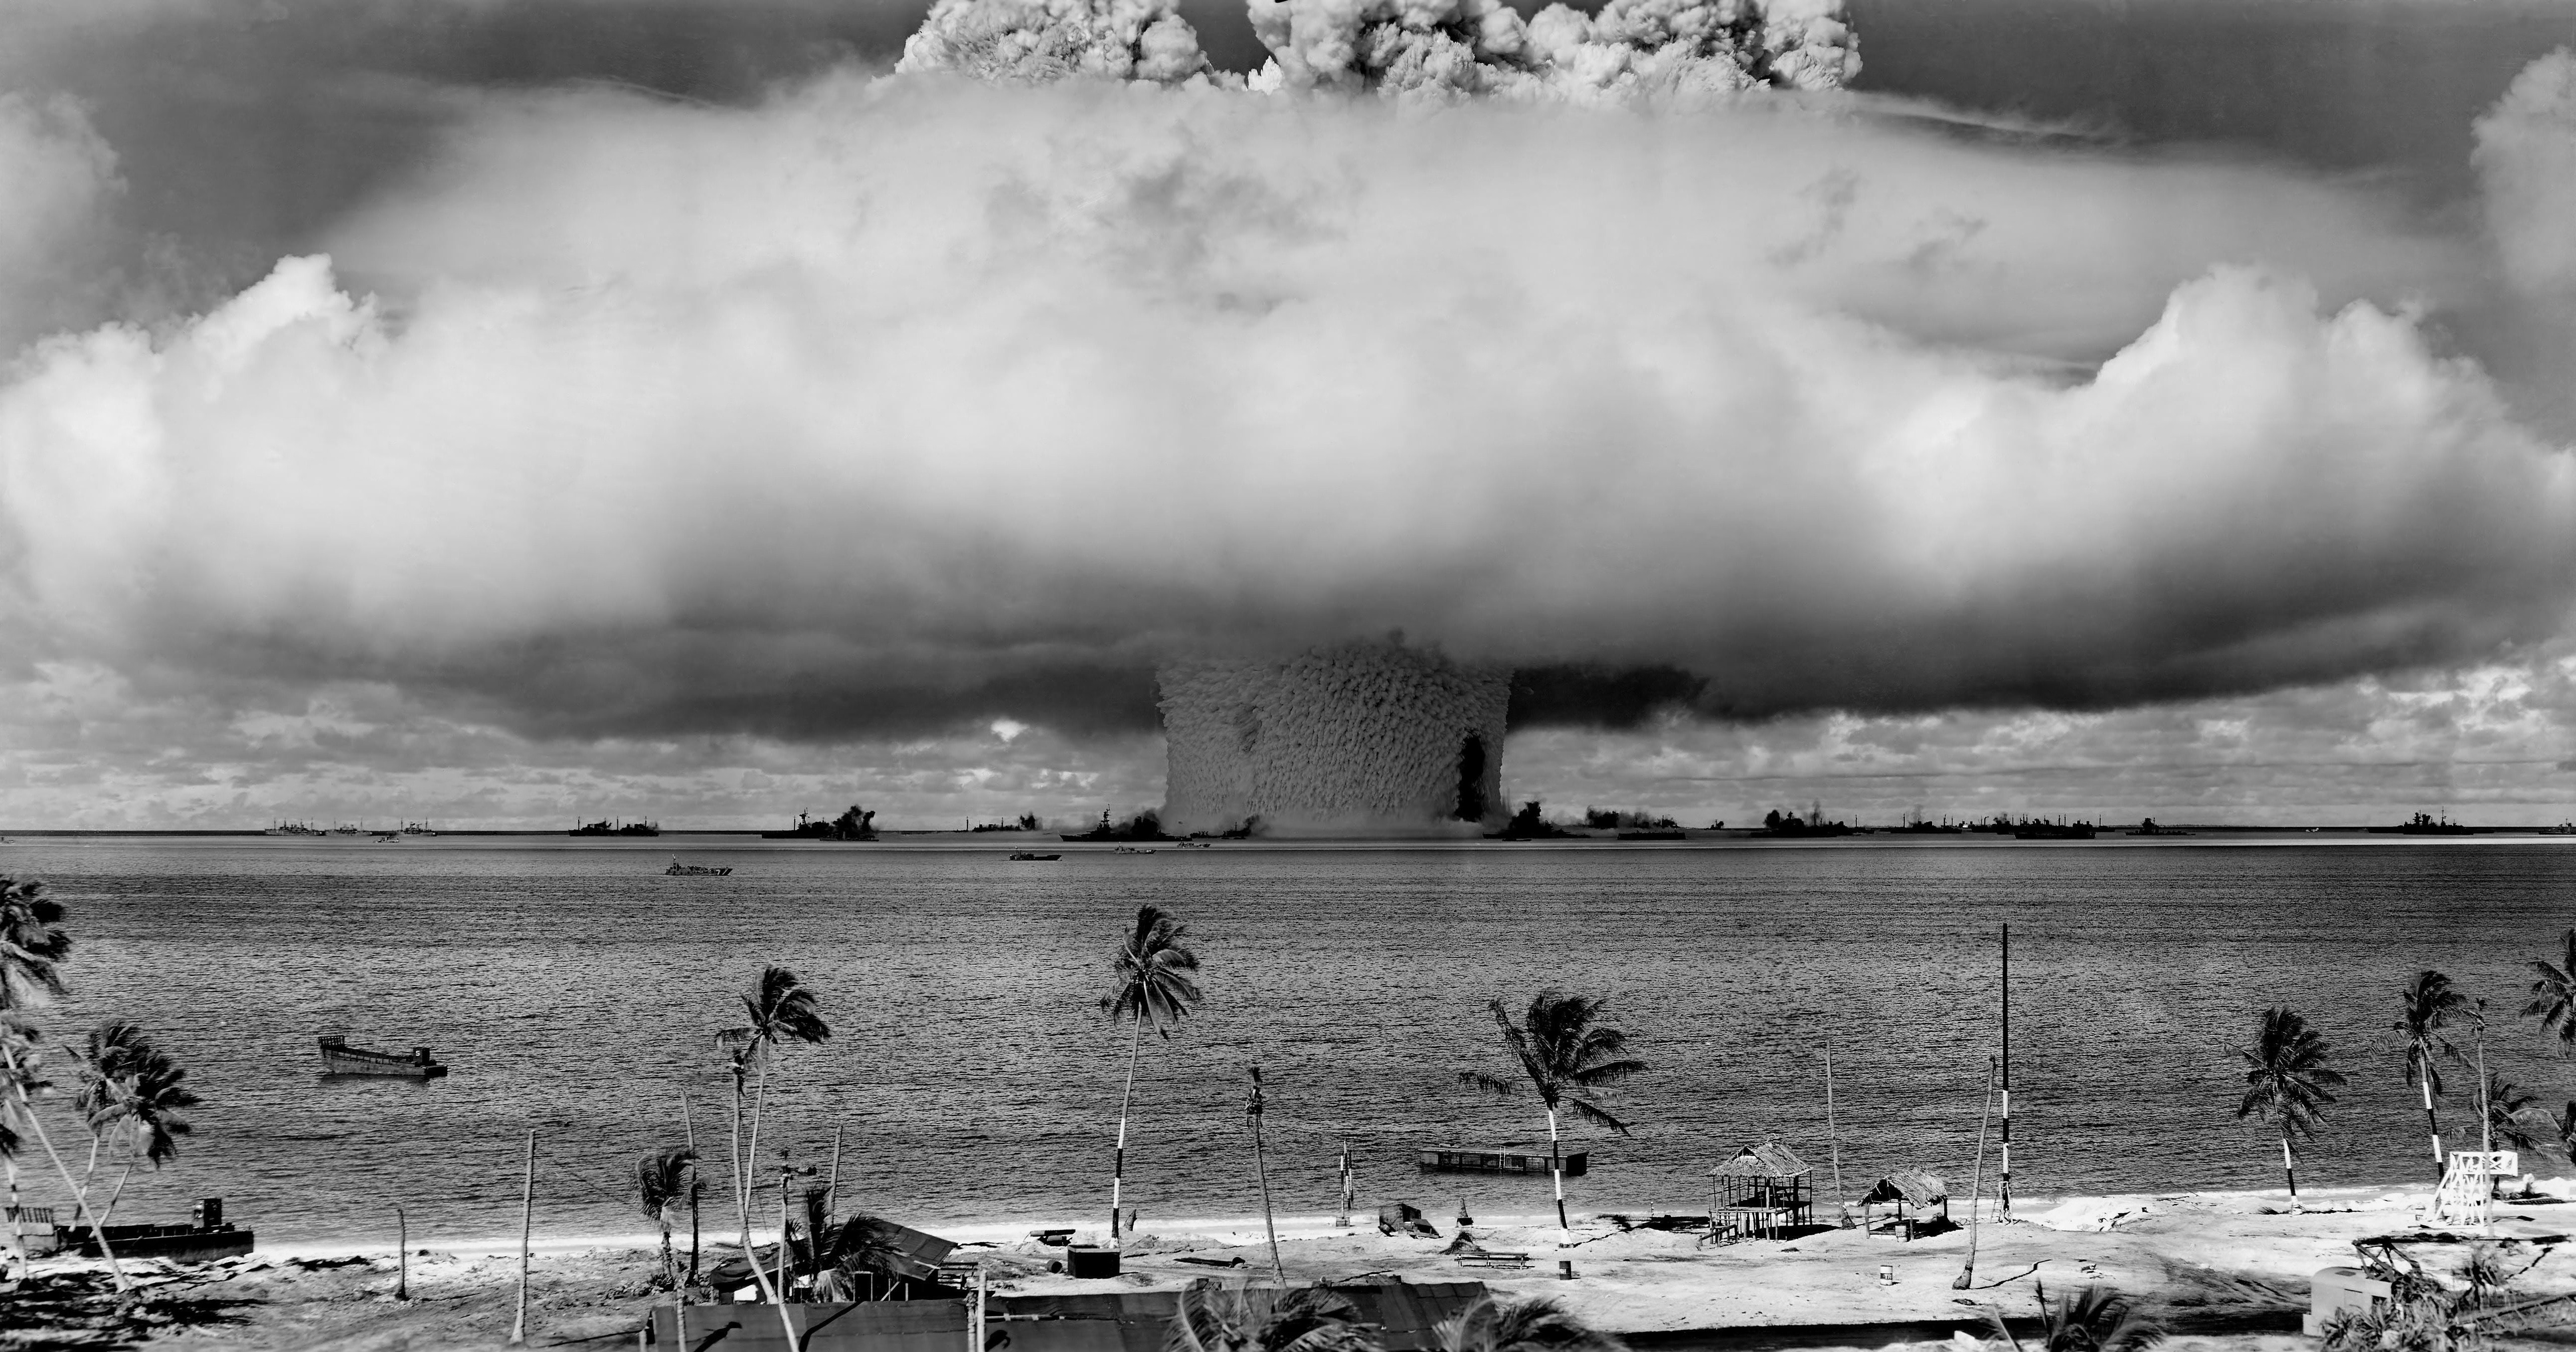 https://iphilo.fr/wp-content/uploads/2019/05/arbres-bombe-atomique-bombe-nucleaire-73909.jpg